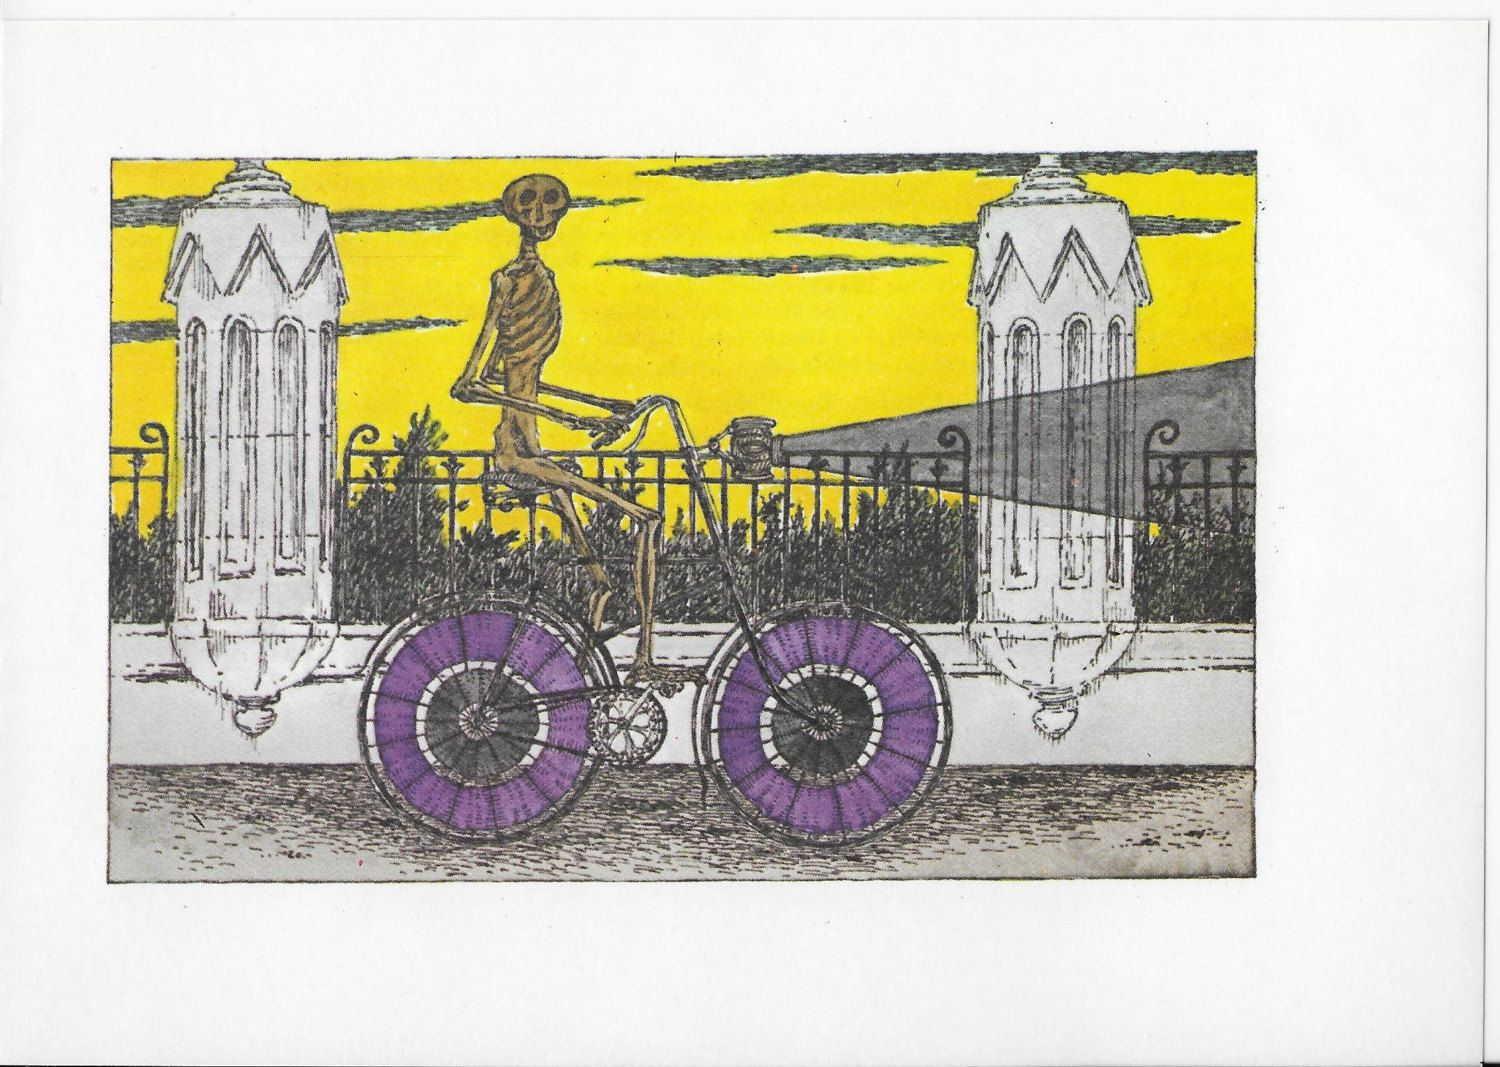 Edward Gorey Art, Edward Gorey, 1976, Gothic Home Decor, Bicycle Art ...